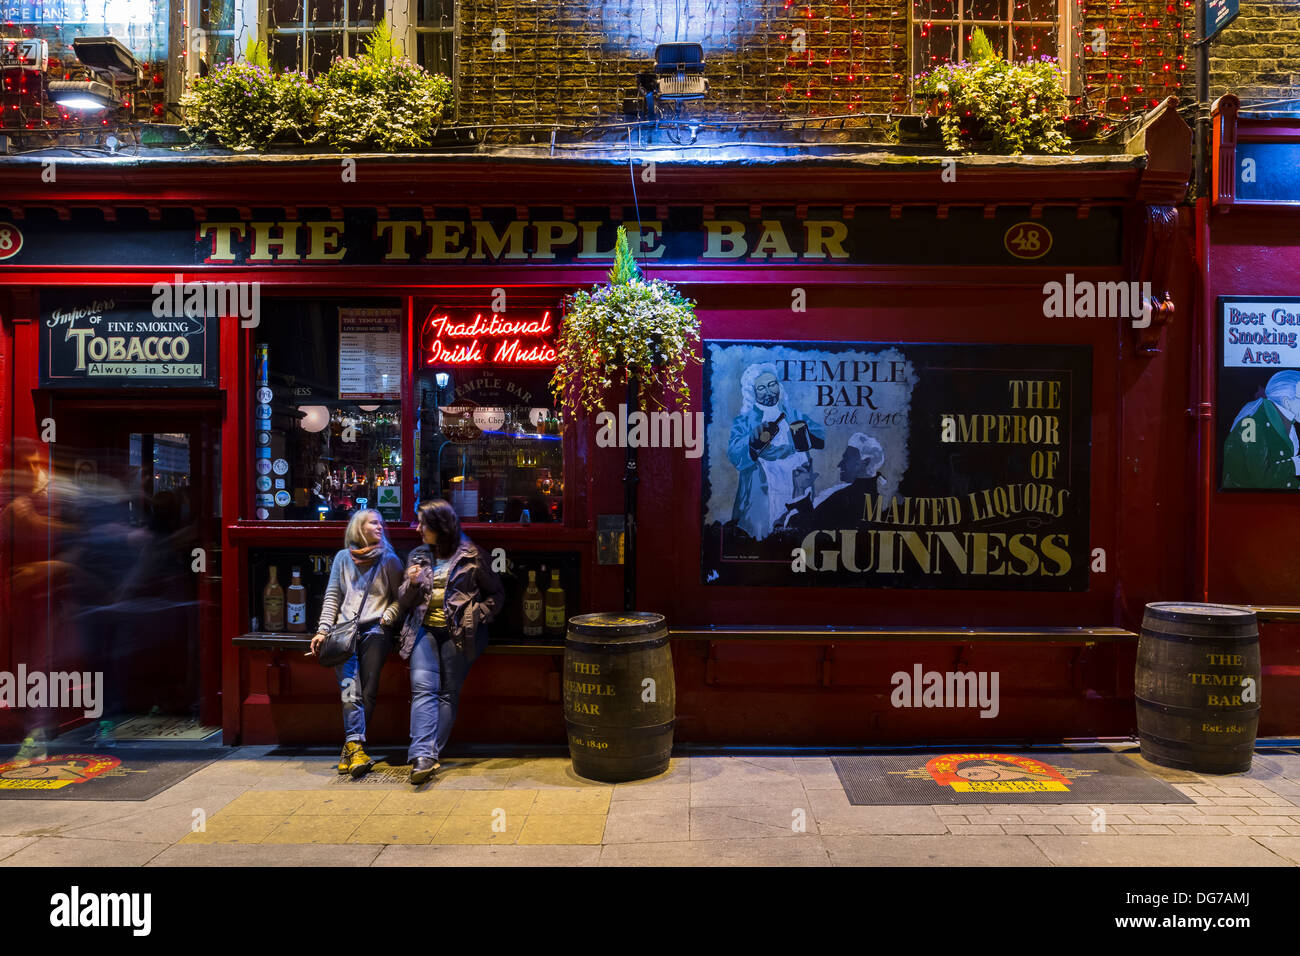 Dublin, Ireland - October 14, 2013: A traditional Irish pub called The Temple Bar on one the street by the same name of Temple B - Stock Image